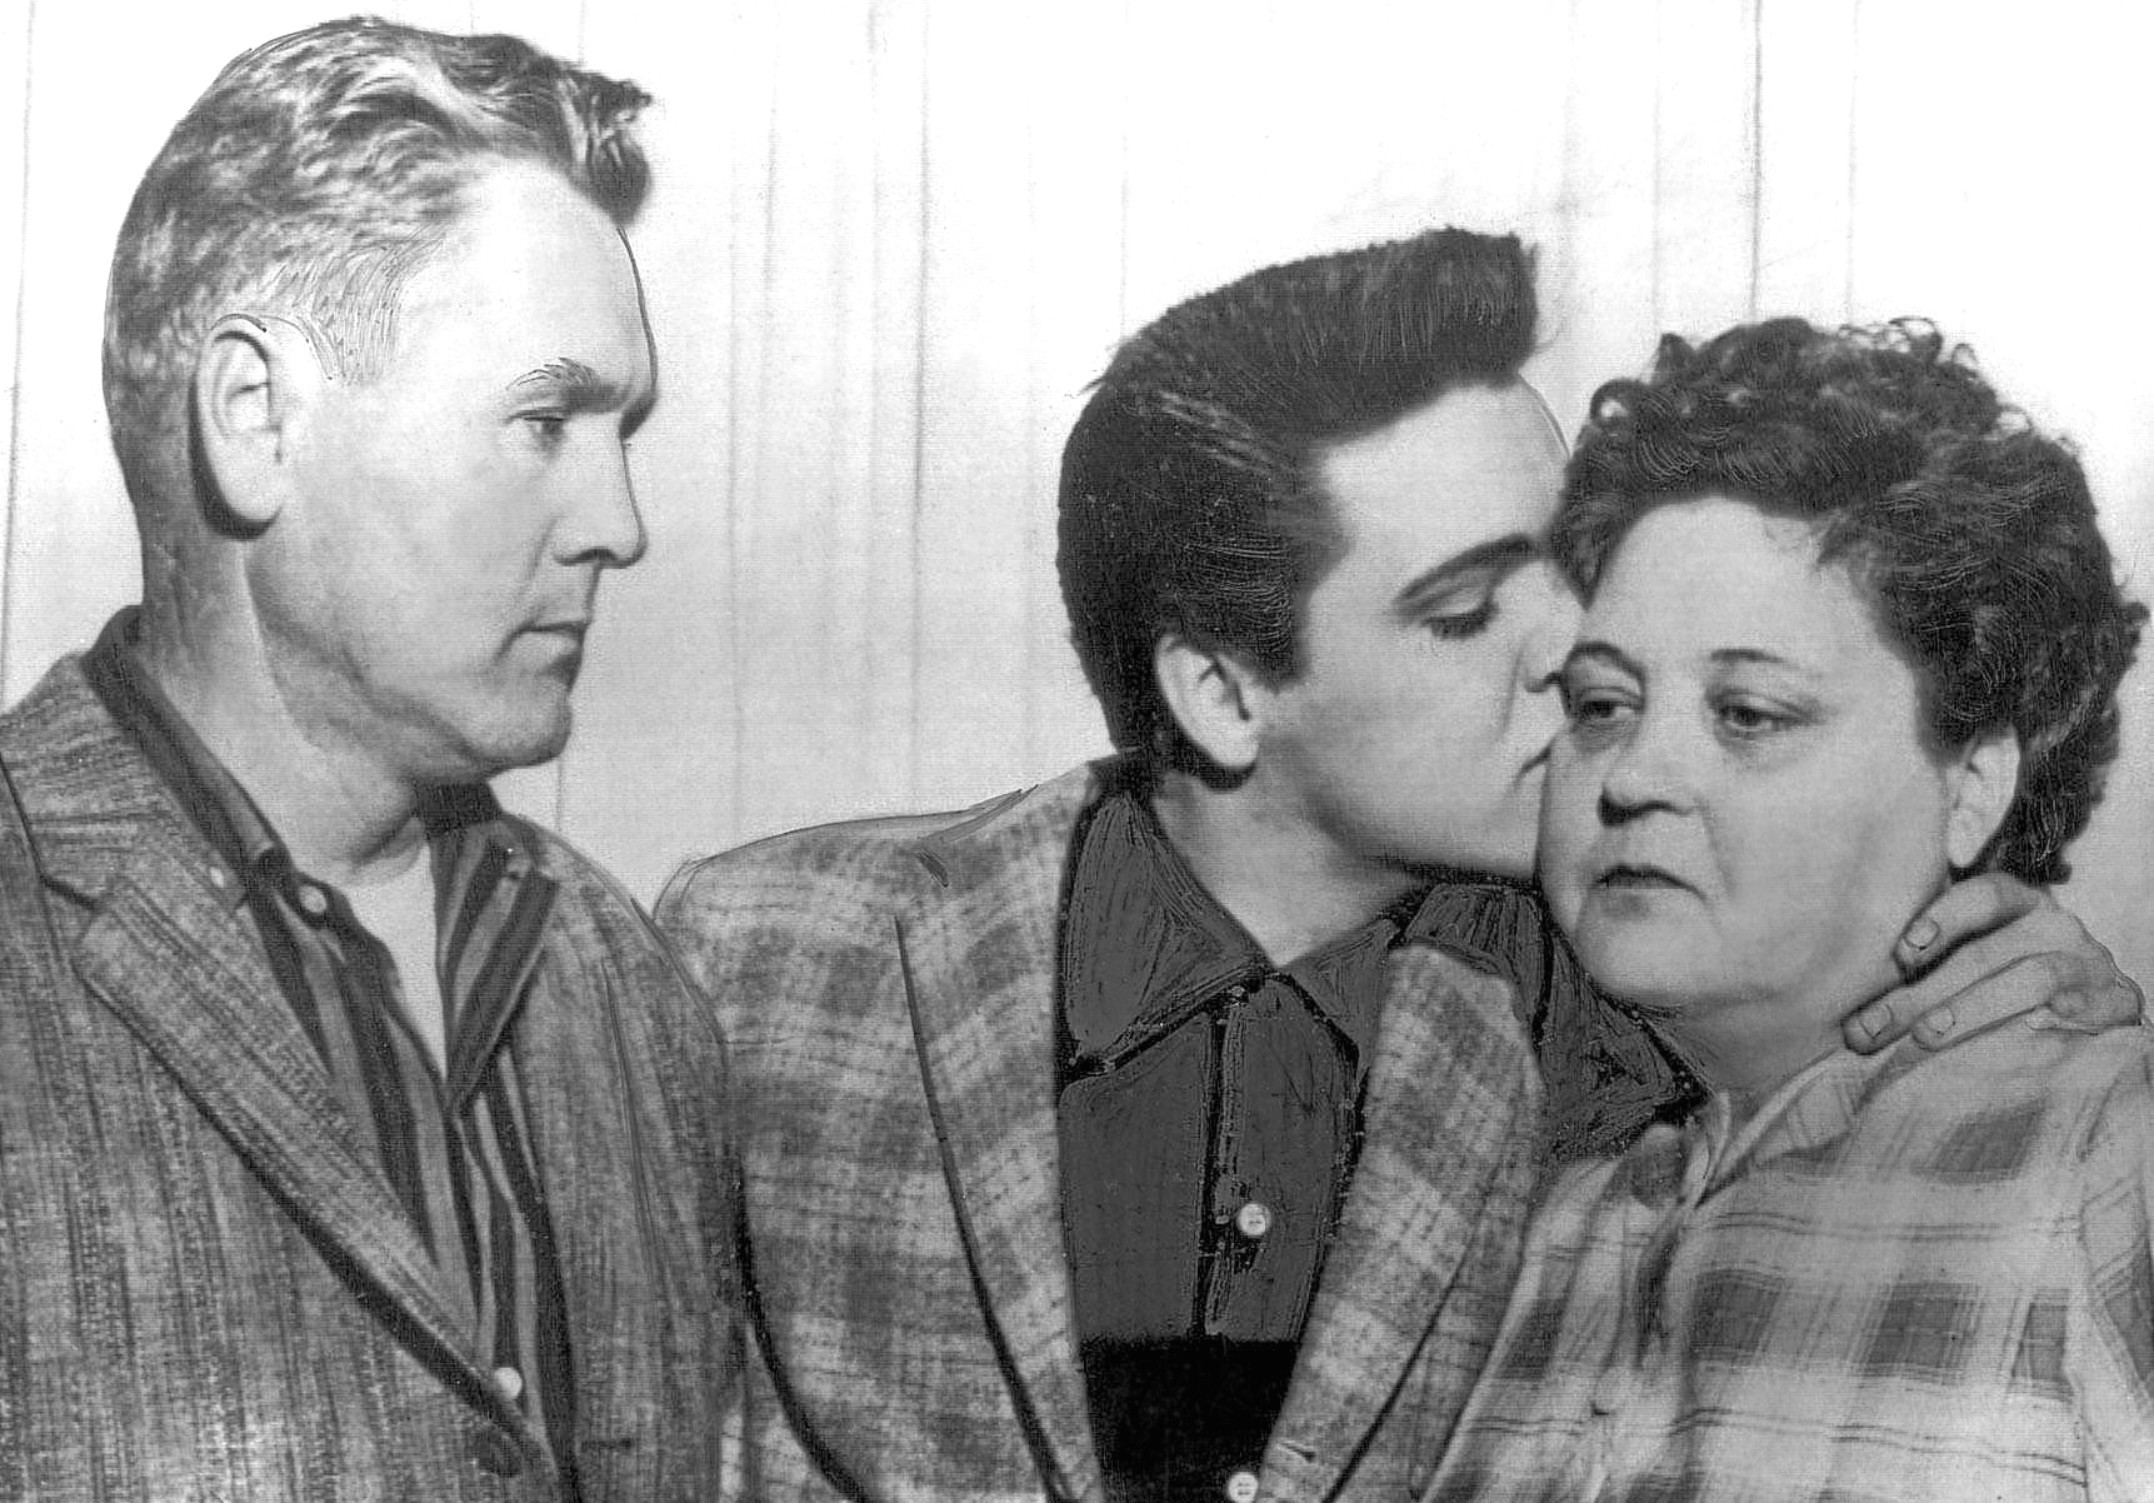 Elvis says goodbye to his dad, Vernon, and beloved mum, Gladys, as he prepares to enter the military (Everett Collection Inc / Alamy)